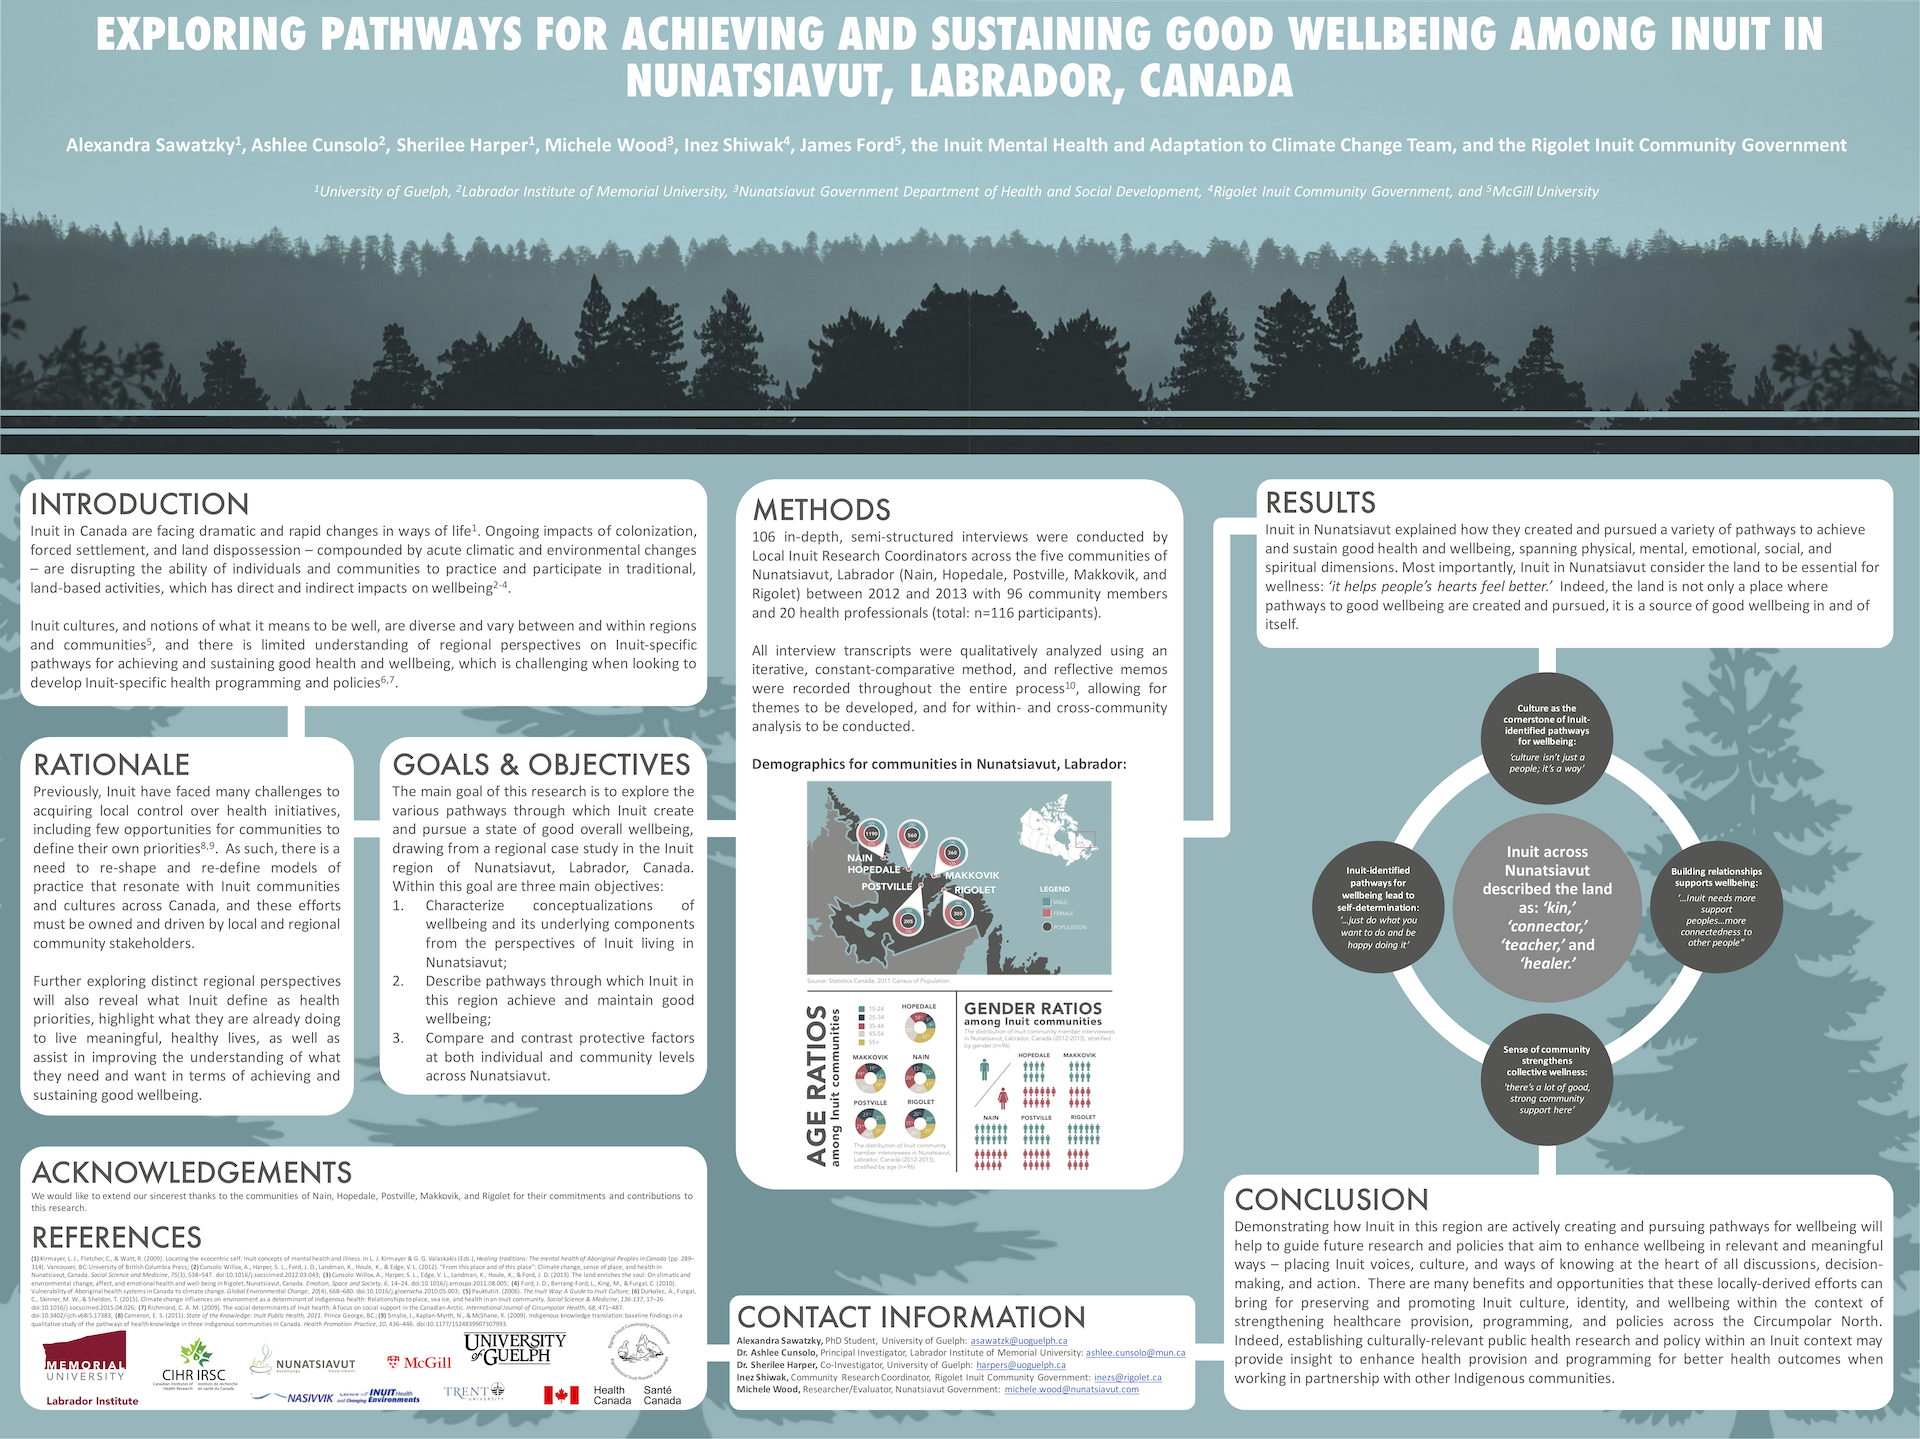 Award Winning Poster - 2016 Labrador Research Forum & 2016 ArcticNet ASM